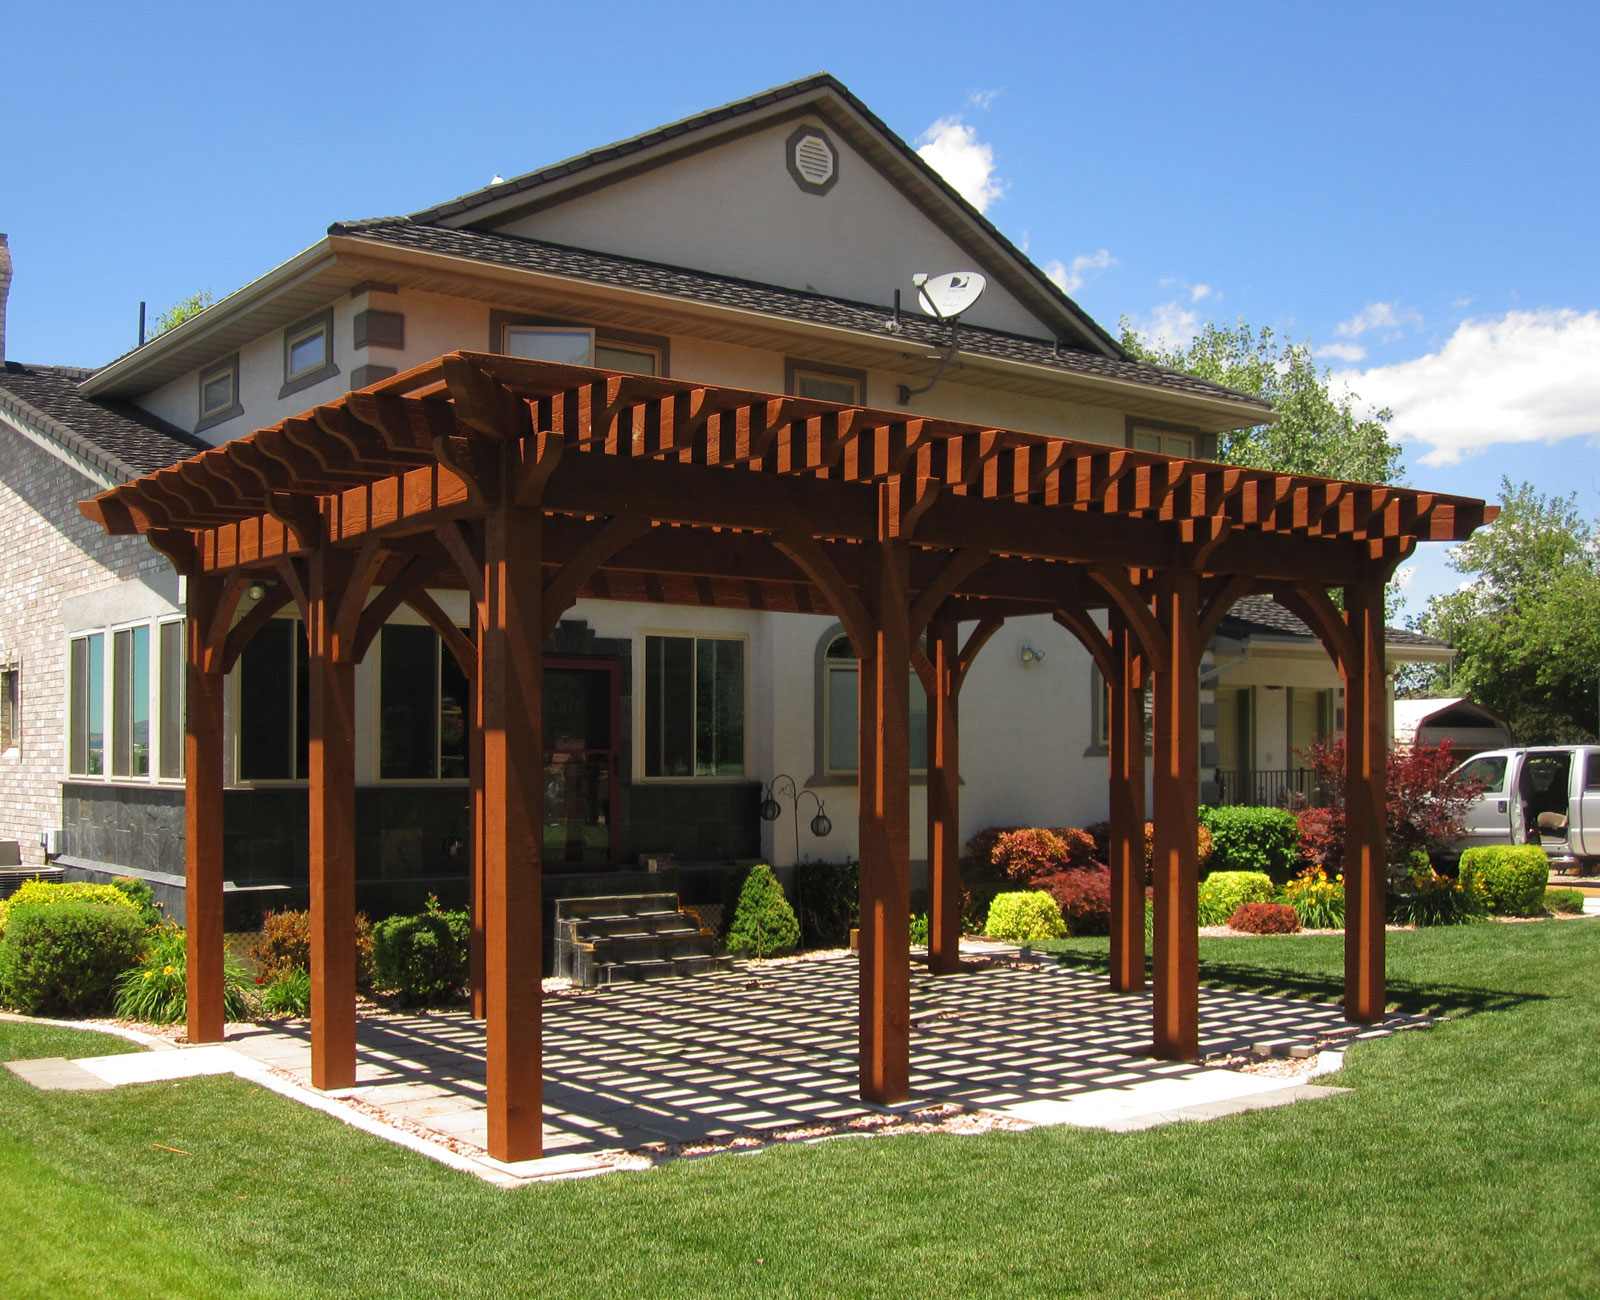 Rich Sequoia Premium Stain Color | Western Timber Frame on Sequoia Outdoor Living id=81866